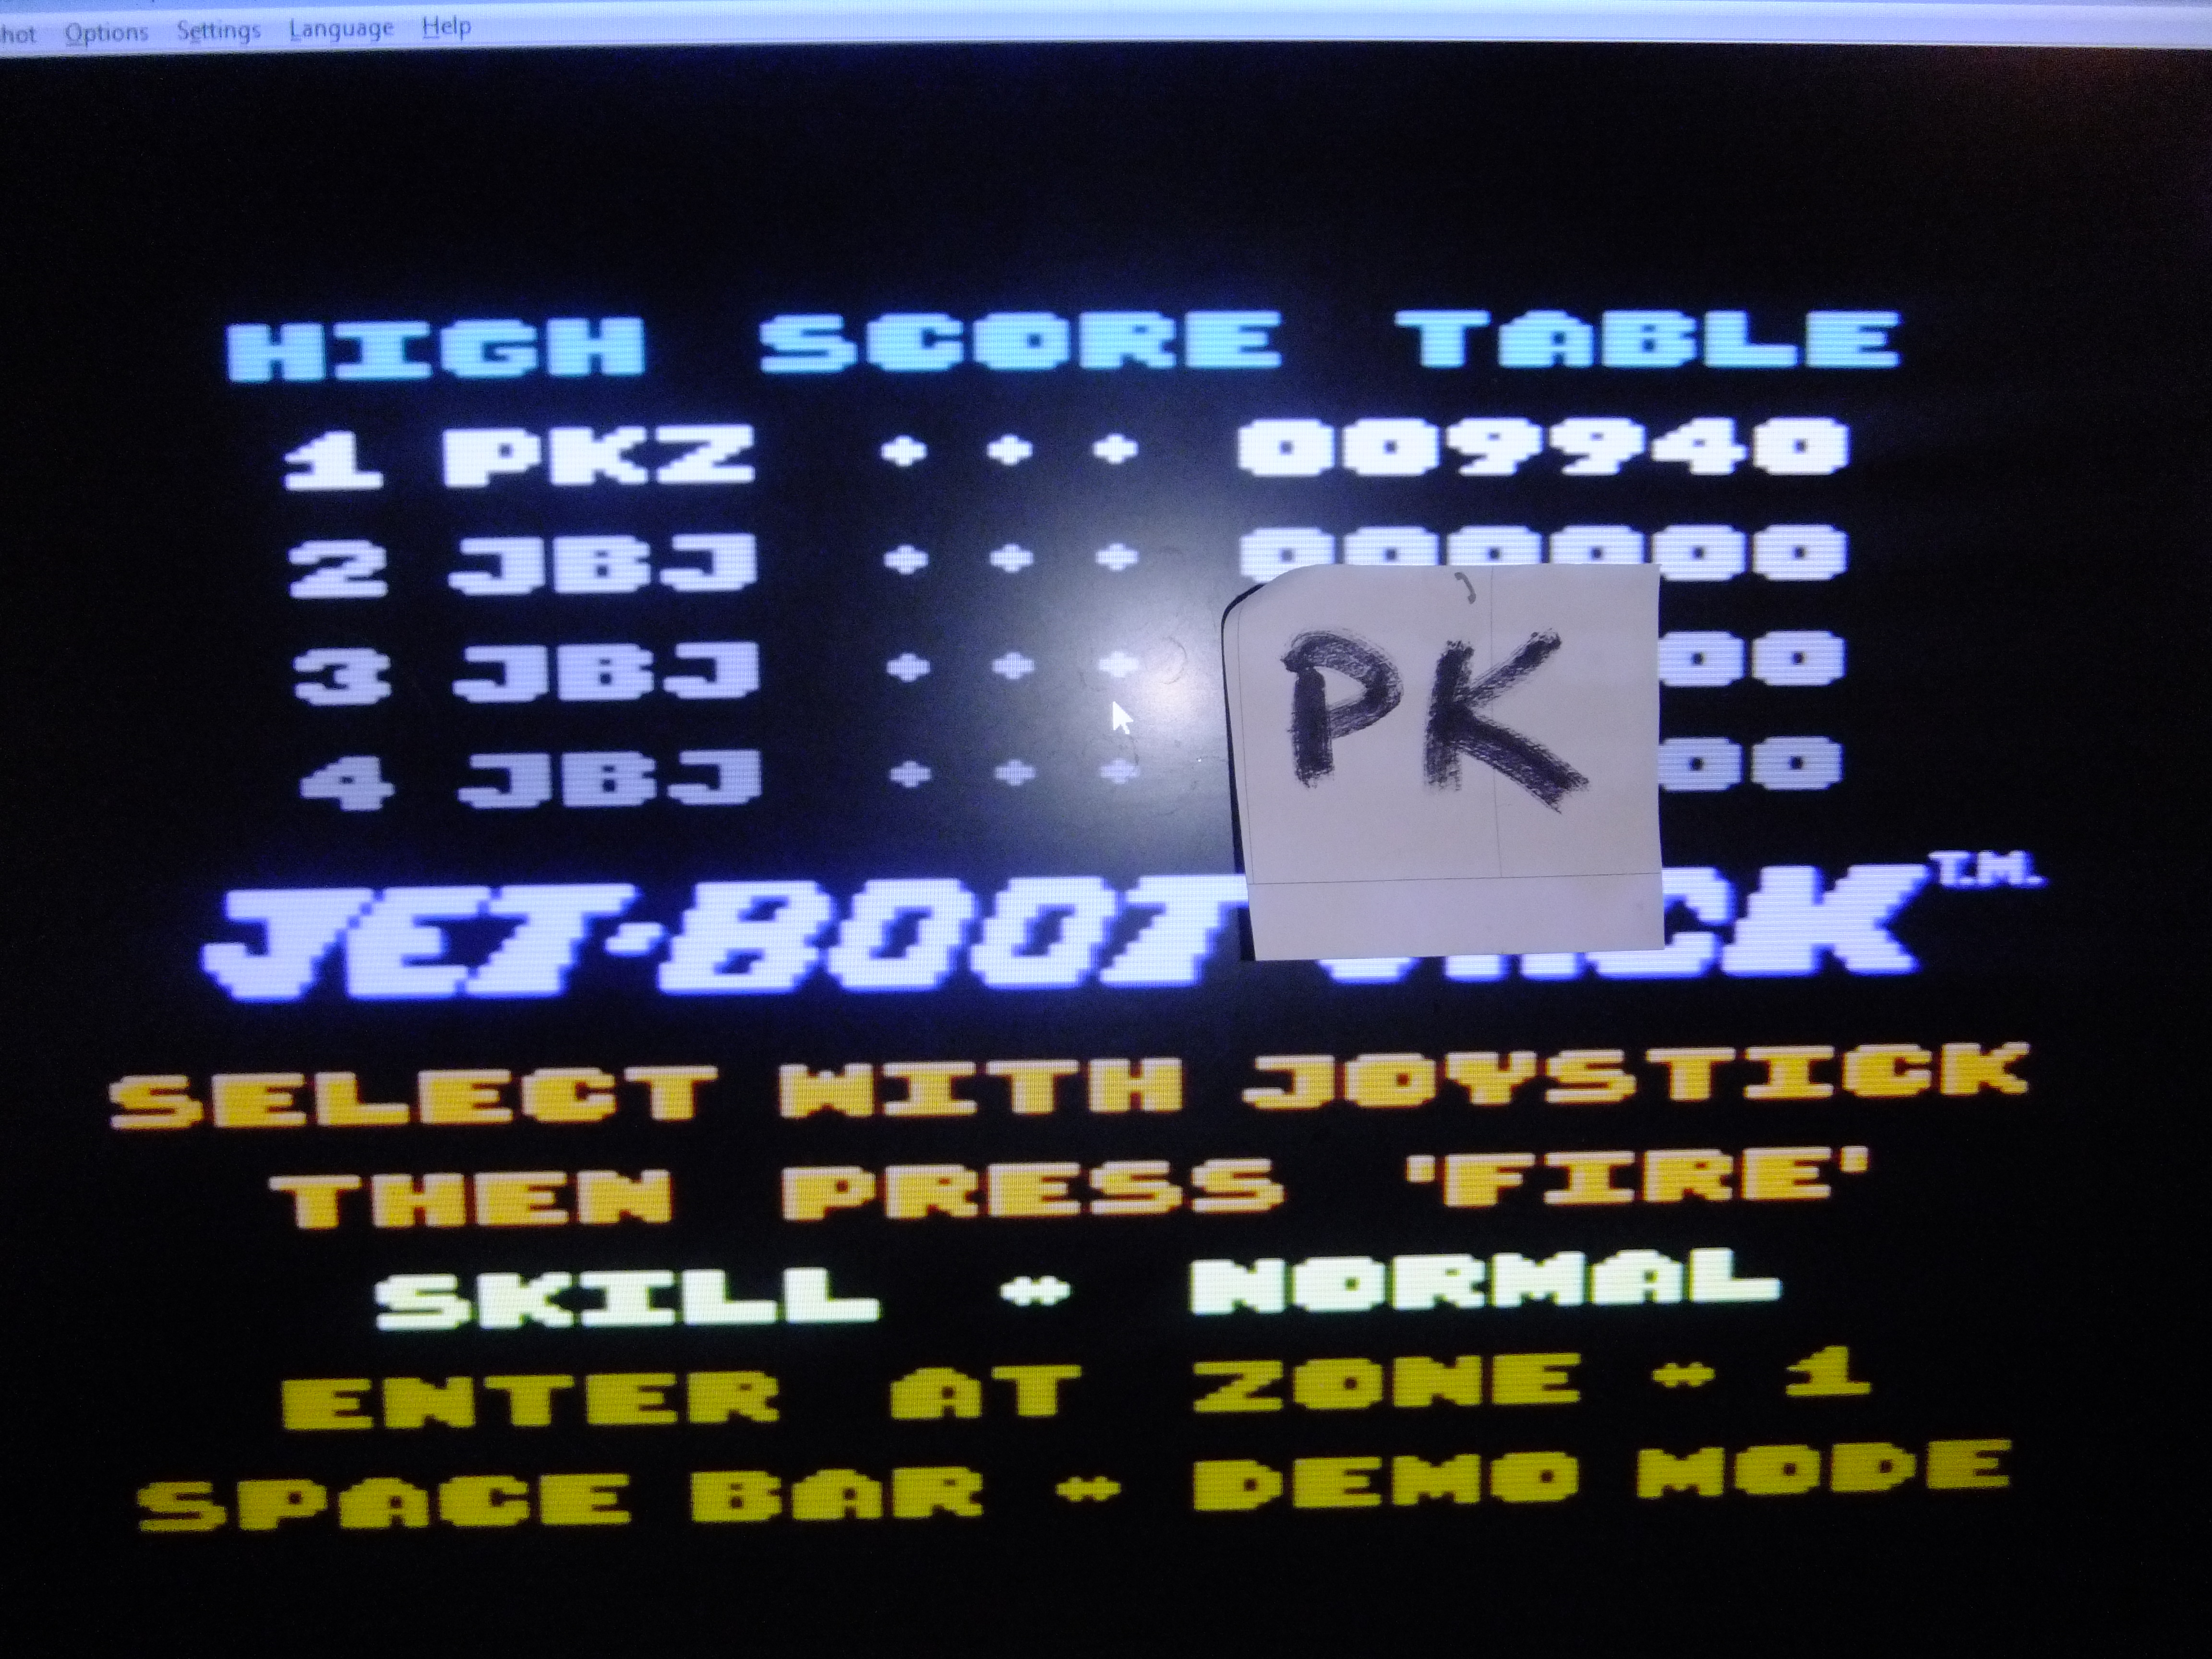 kernzy: The Legend Of Jet-Boot Jack [Normal] (Commodore 64 Emulated) 9,940 points on 2015-11-16 16:06:24